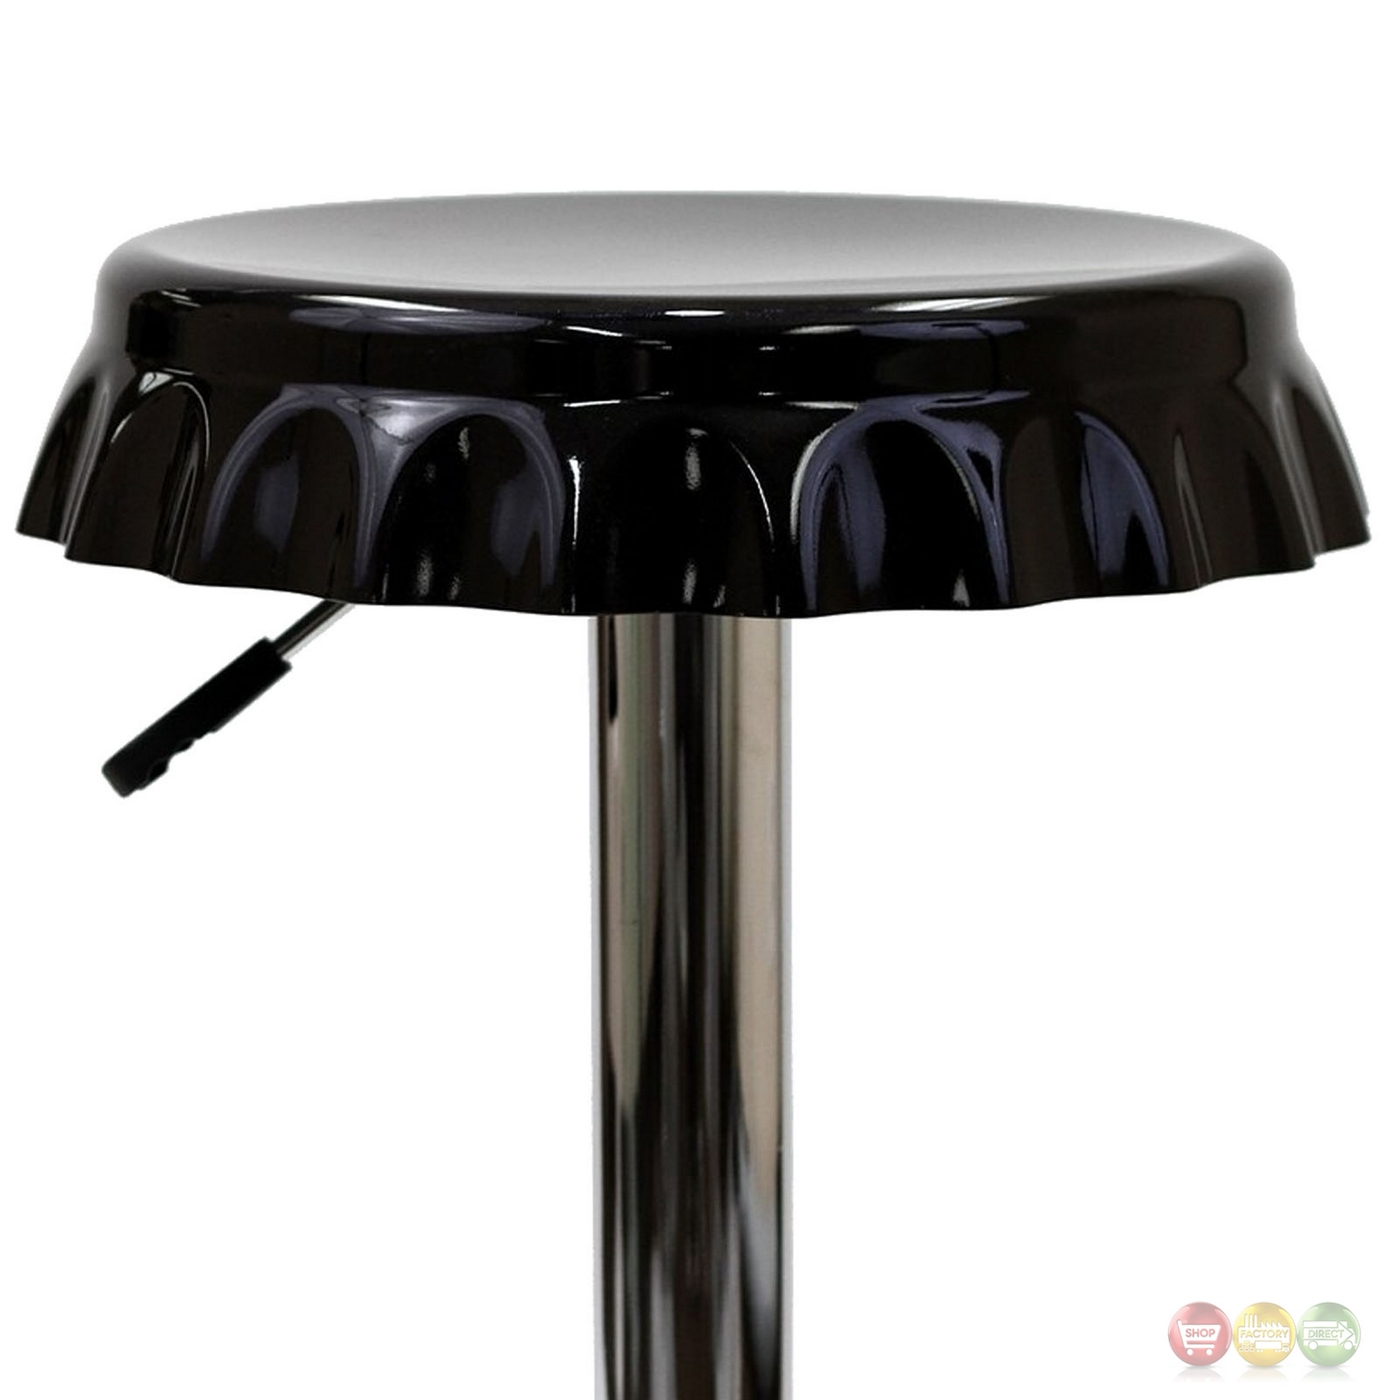 Soda Modern Bottle Cap Bar Stool W Chrome Base Amp Foot Rest